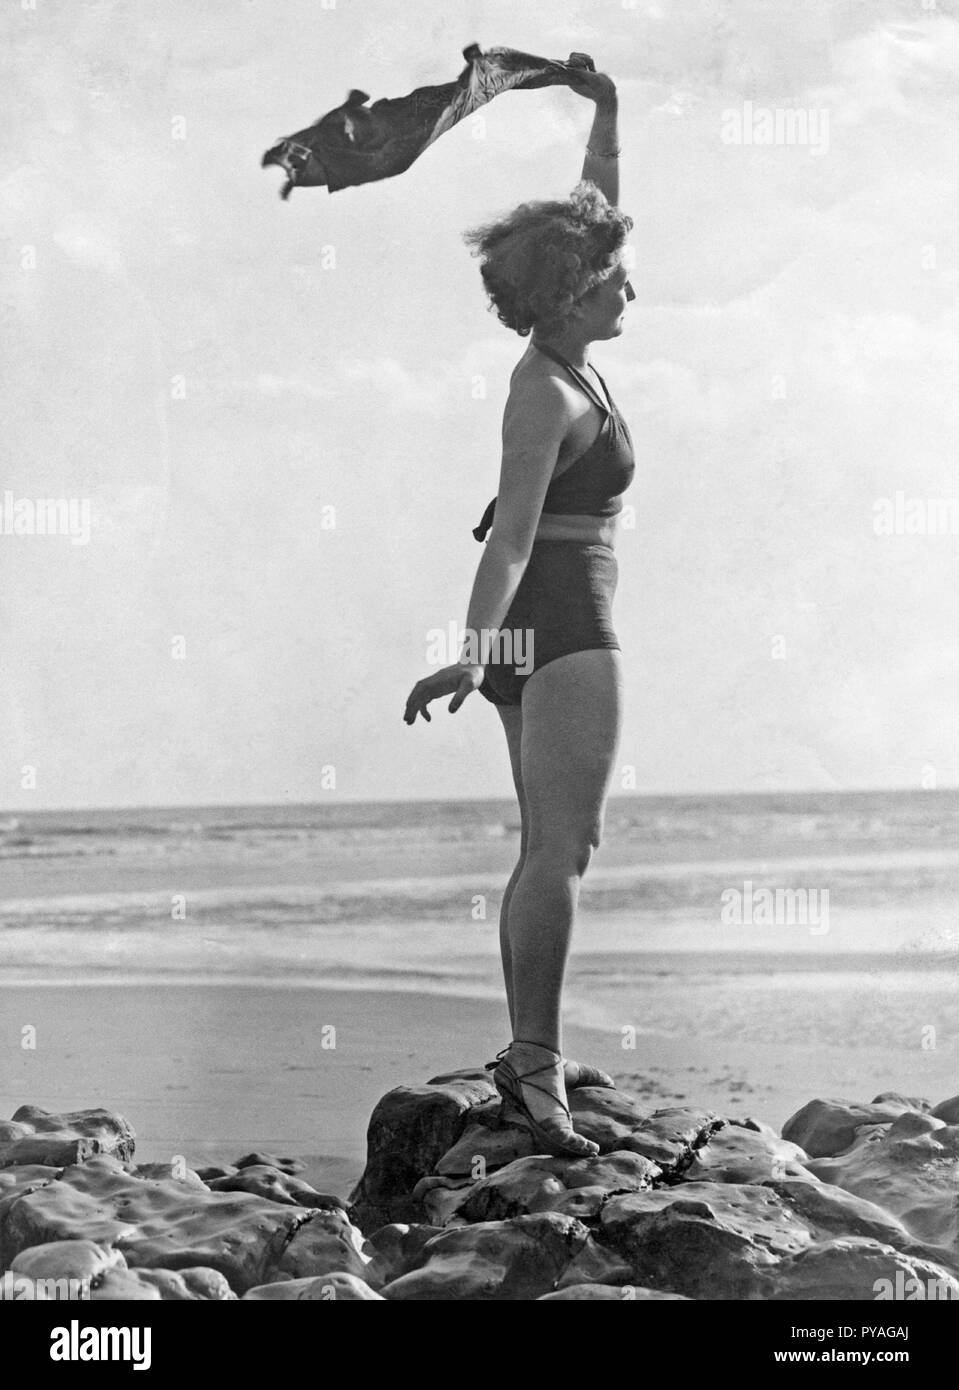 On the beach in the 1930s. A young woman in a two piece bathing suite, standing on the beach waving at someone. 1930s - Stock Image